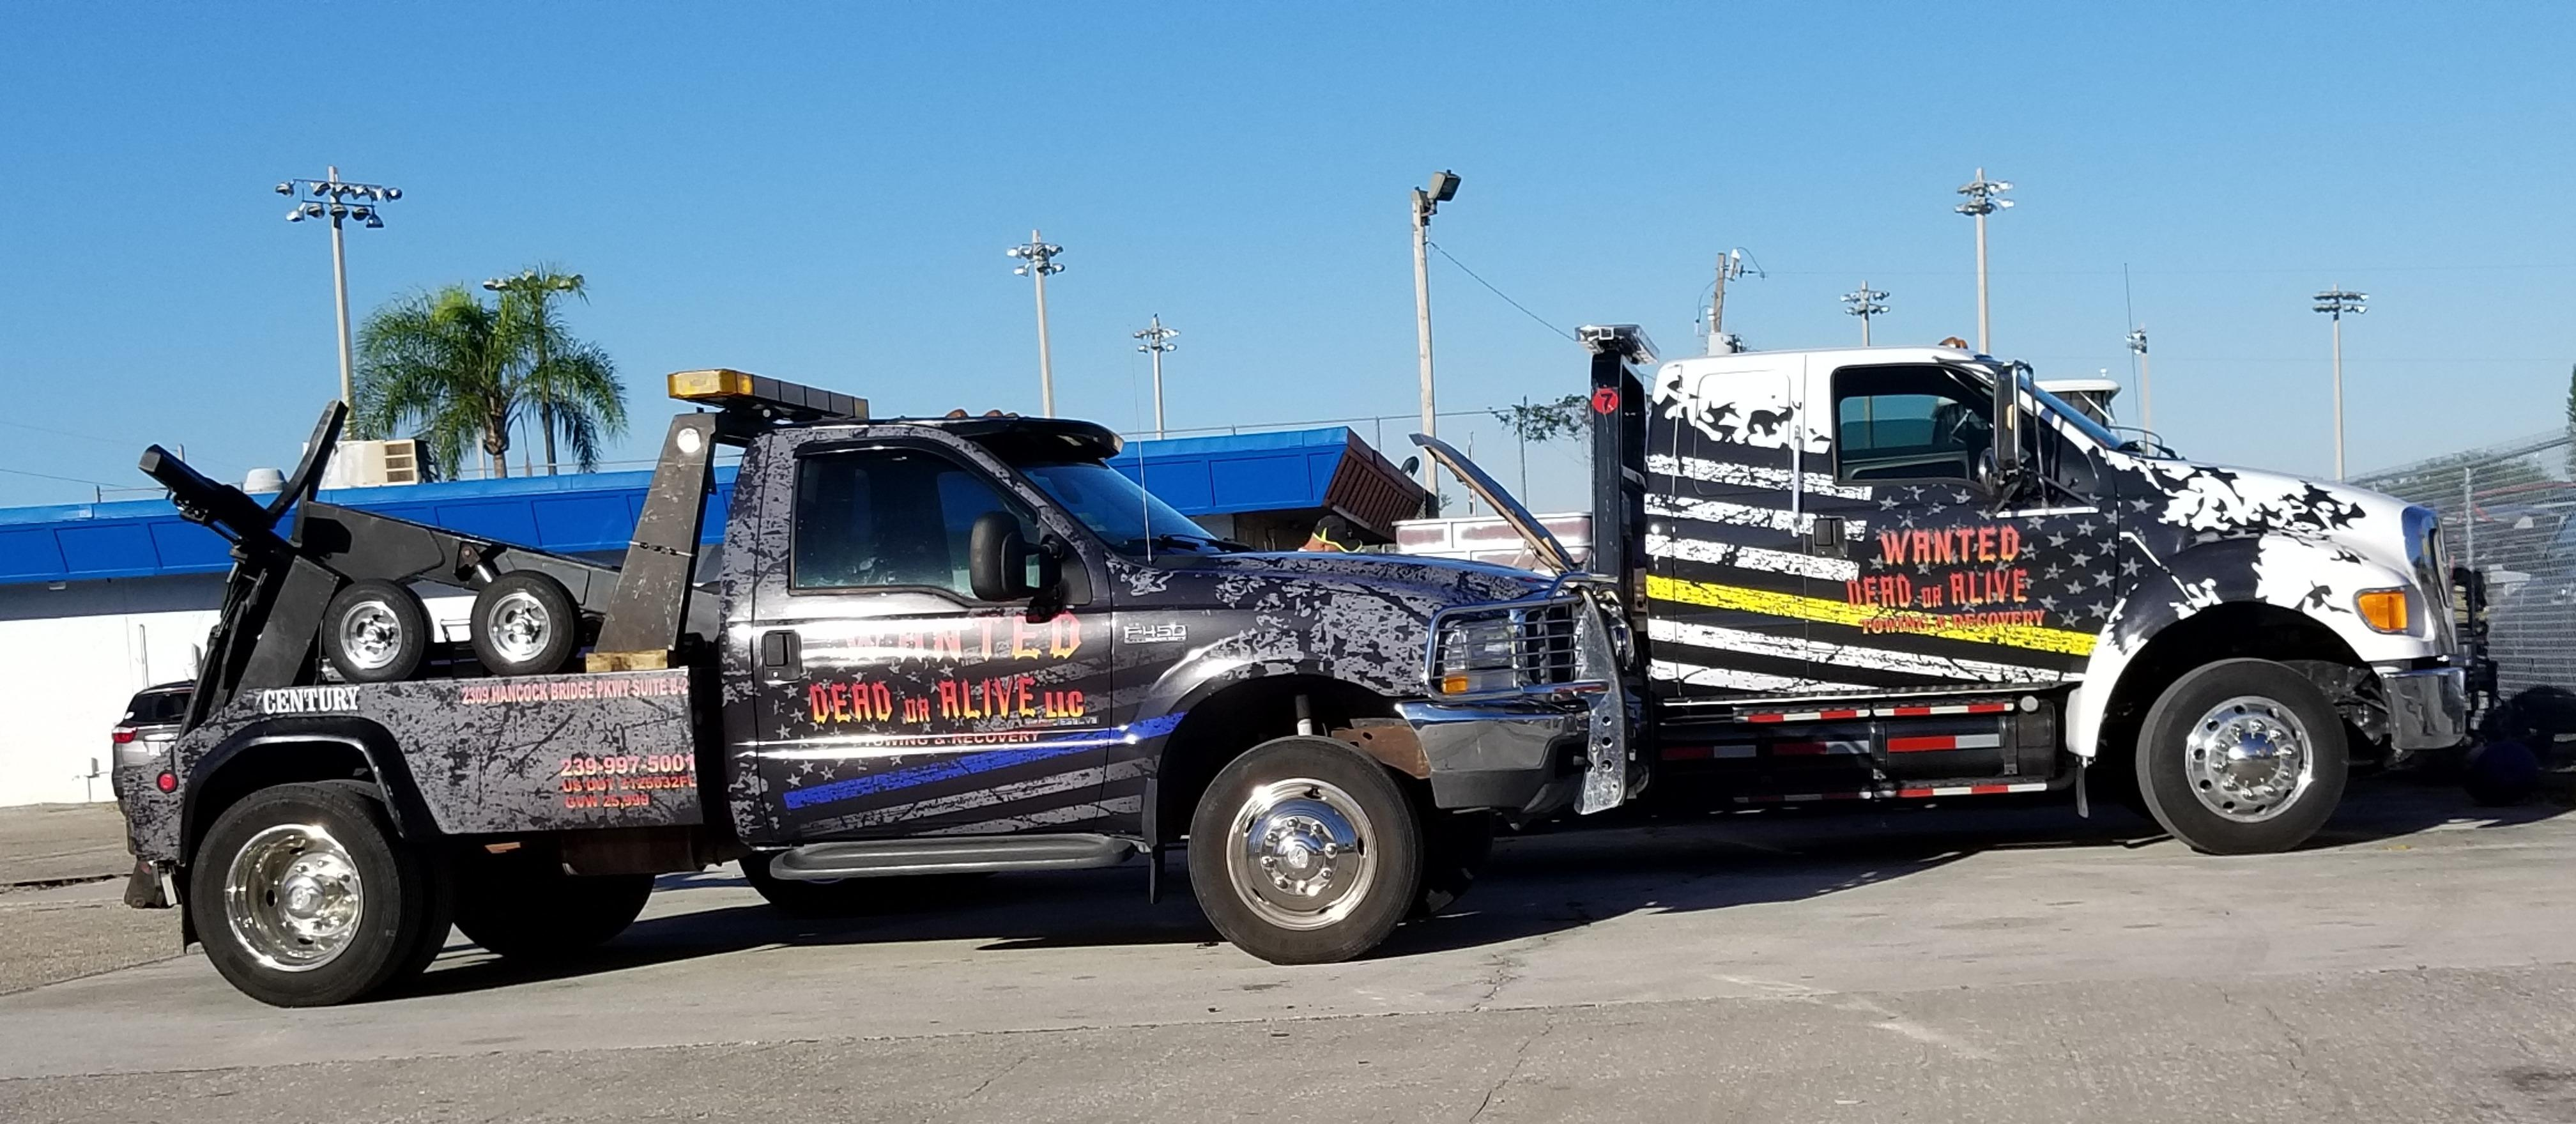 Wanted Dead or Alive Towing & Recovery L.L.C. - Cape Coral, FL 33990 - (239)997-5001 | ShowMeLocal.com